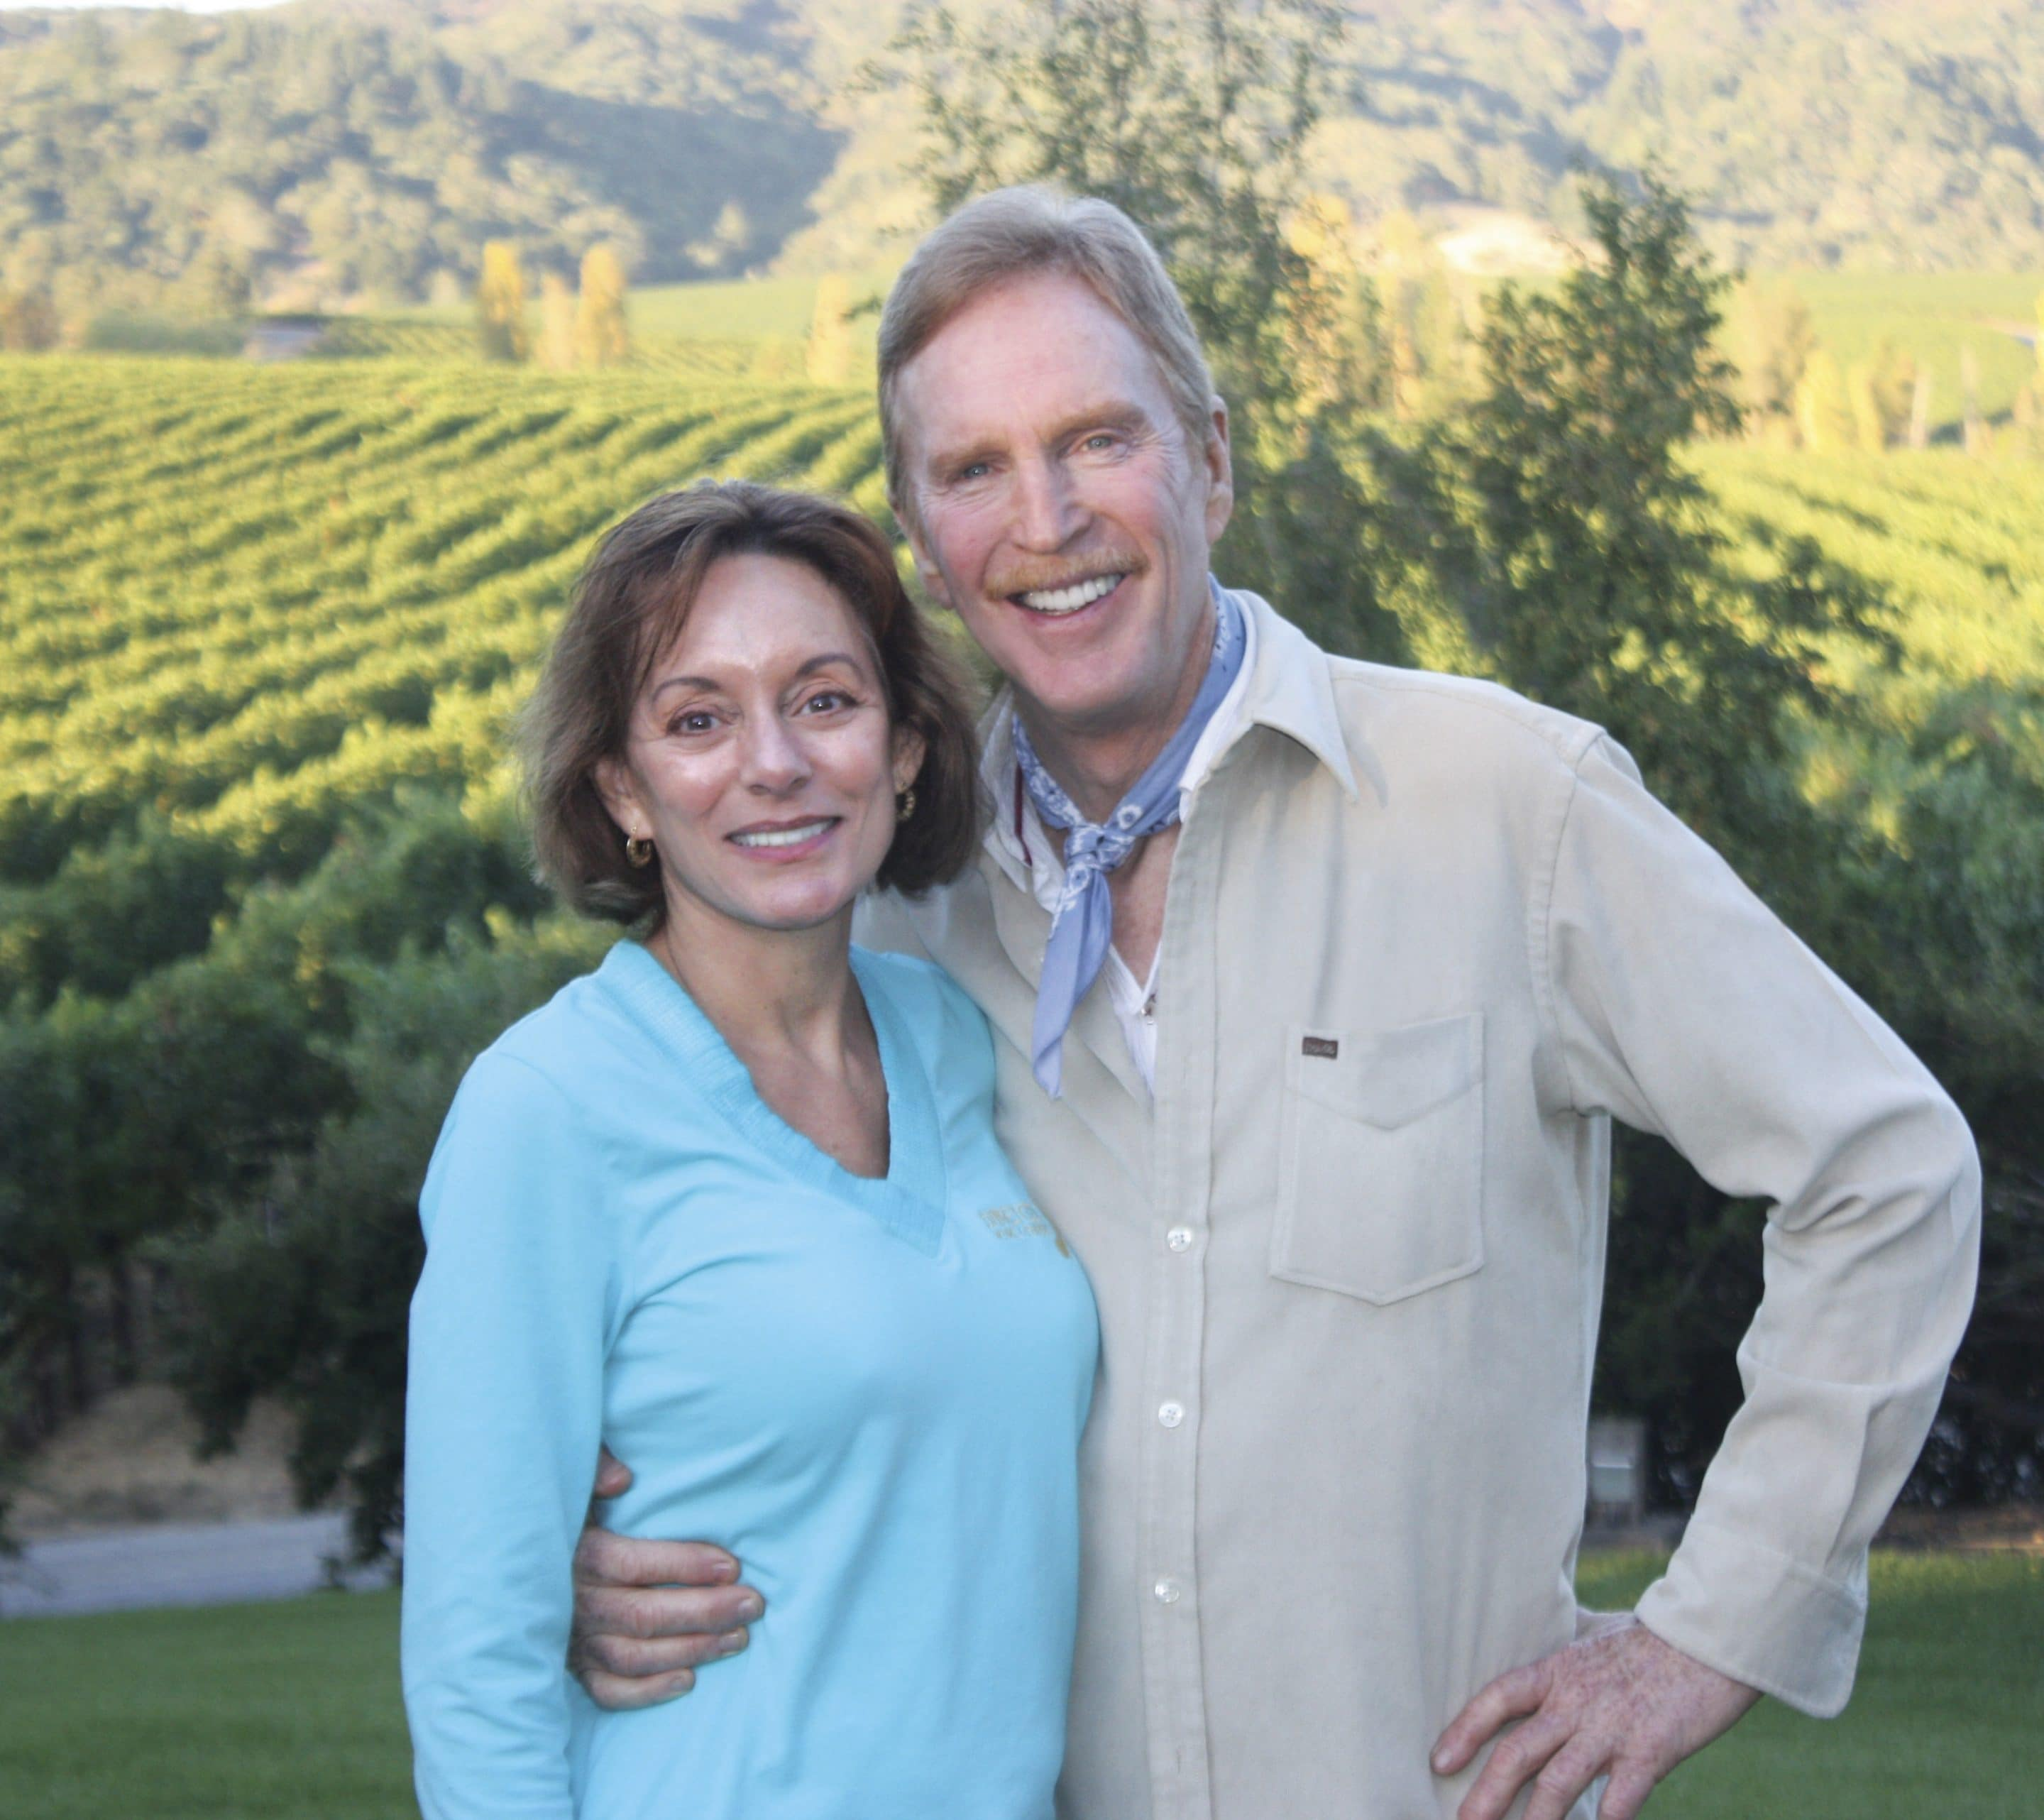 Michael & Bonnie - Vineyard (3199px X 2848px)